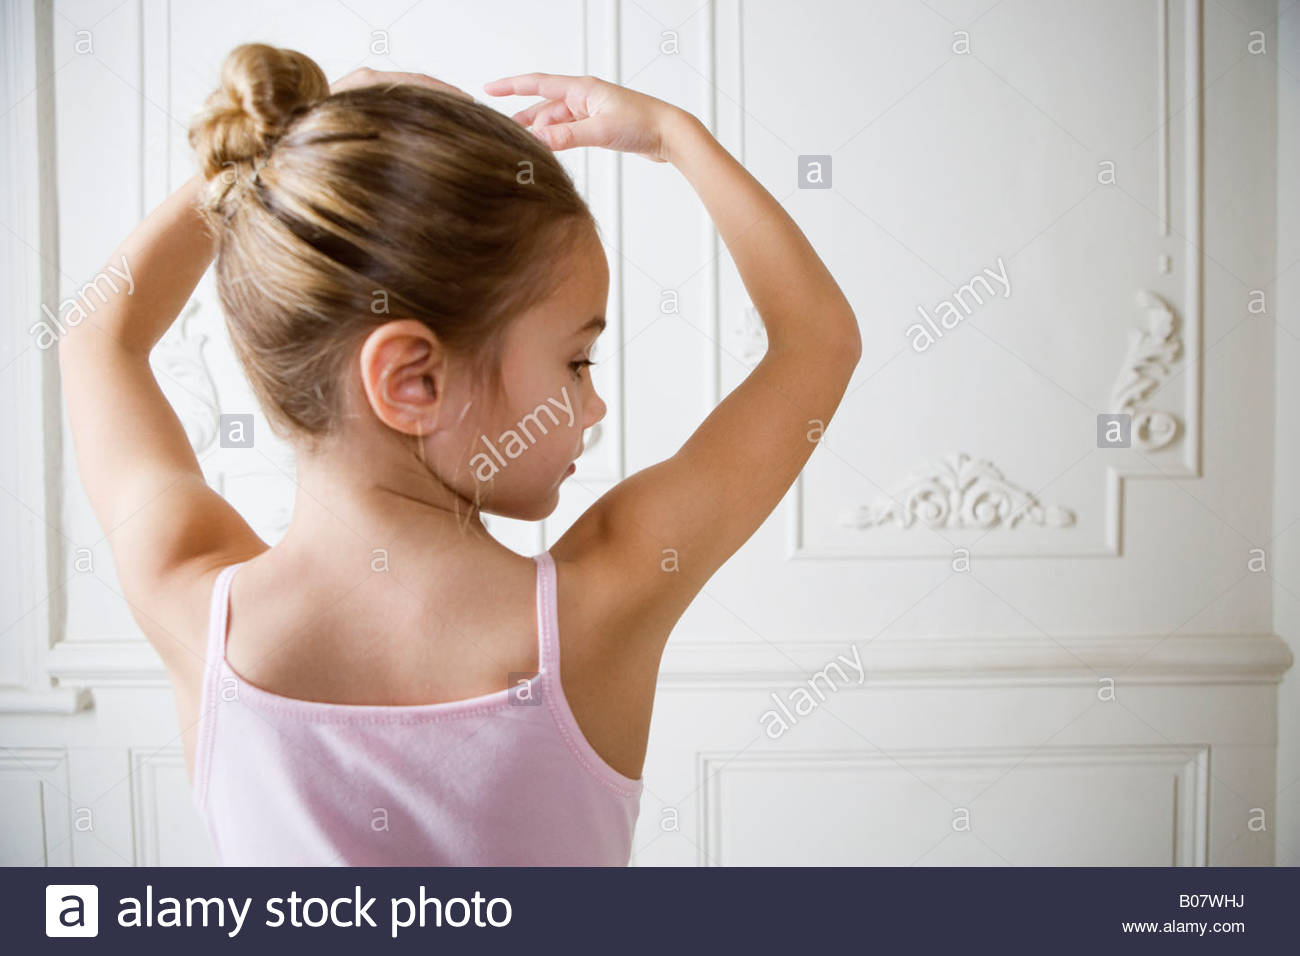 Jeune fille effectuant un mouvement de ballet Photo Stock